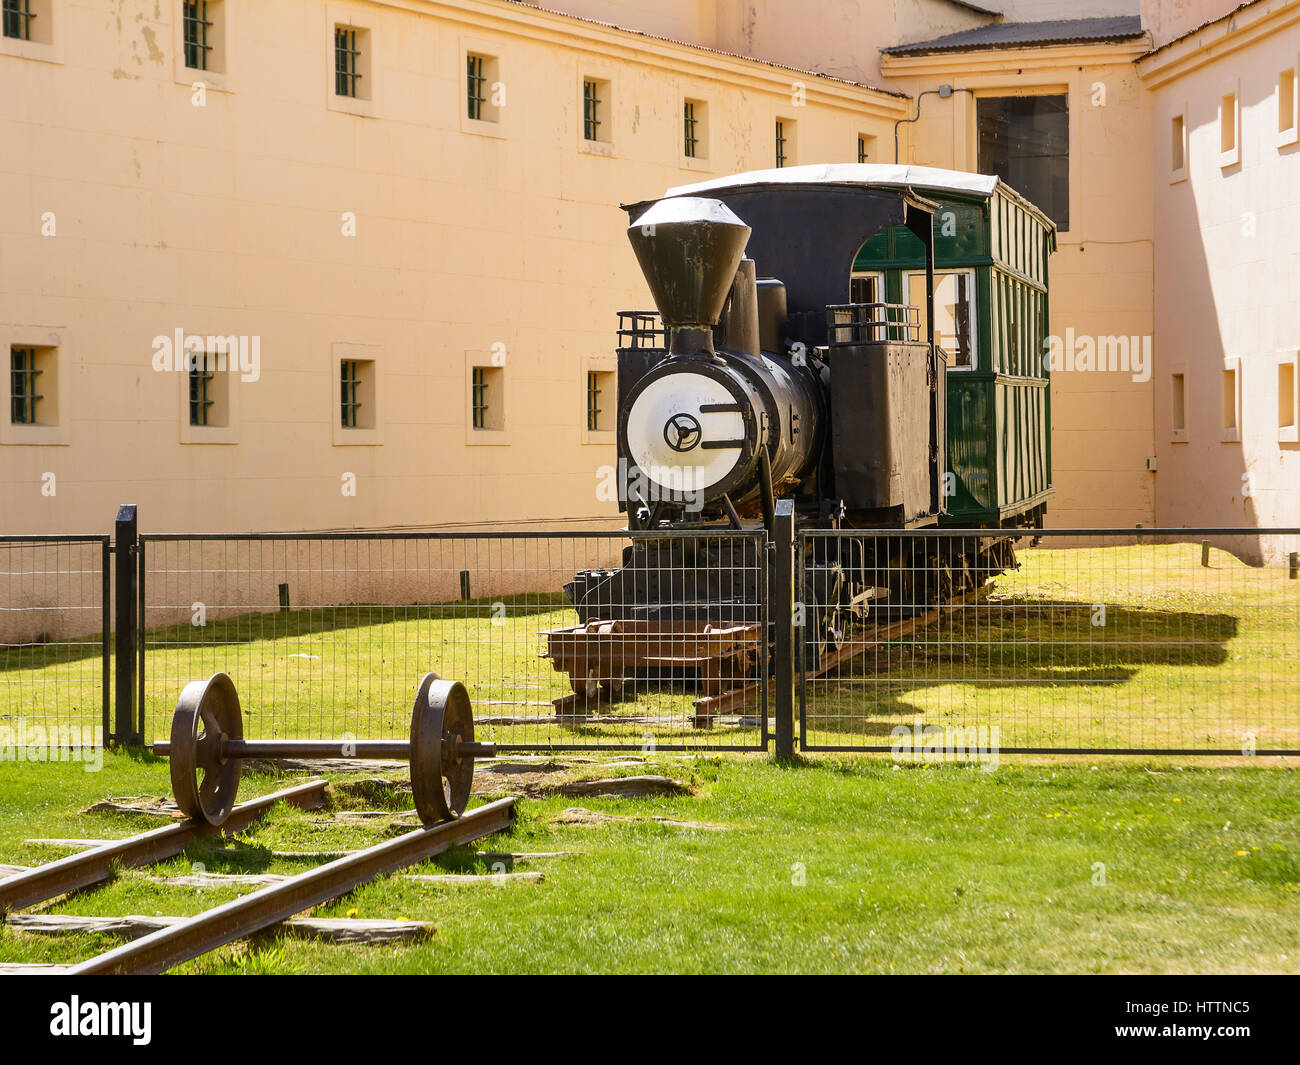 Ushuaia, Argentina - October 27, 2016: Old originl train in Marttime museum of Ushuaia with nobody - Stock Image